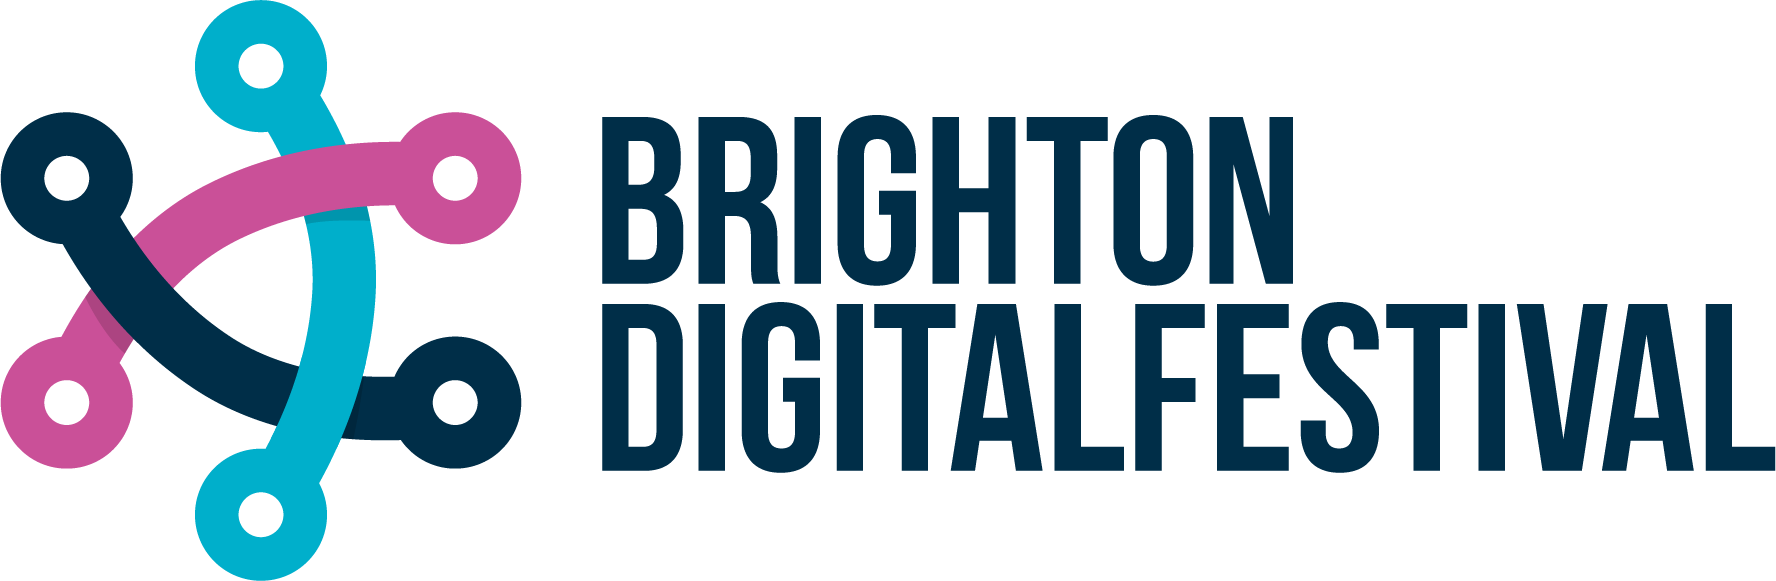 Brighton Digital Festival Logo